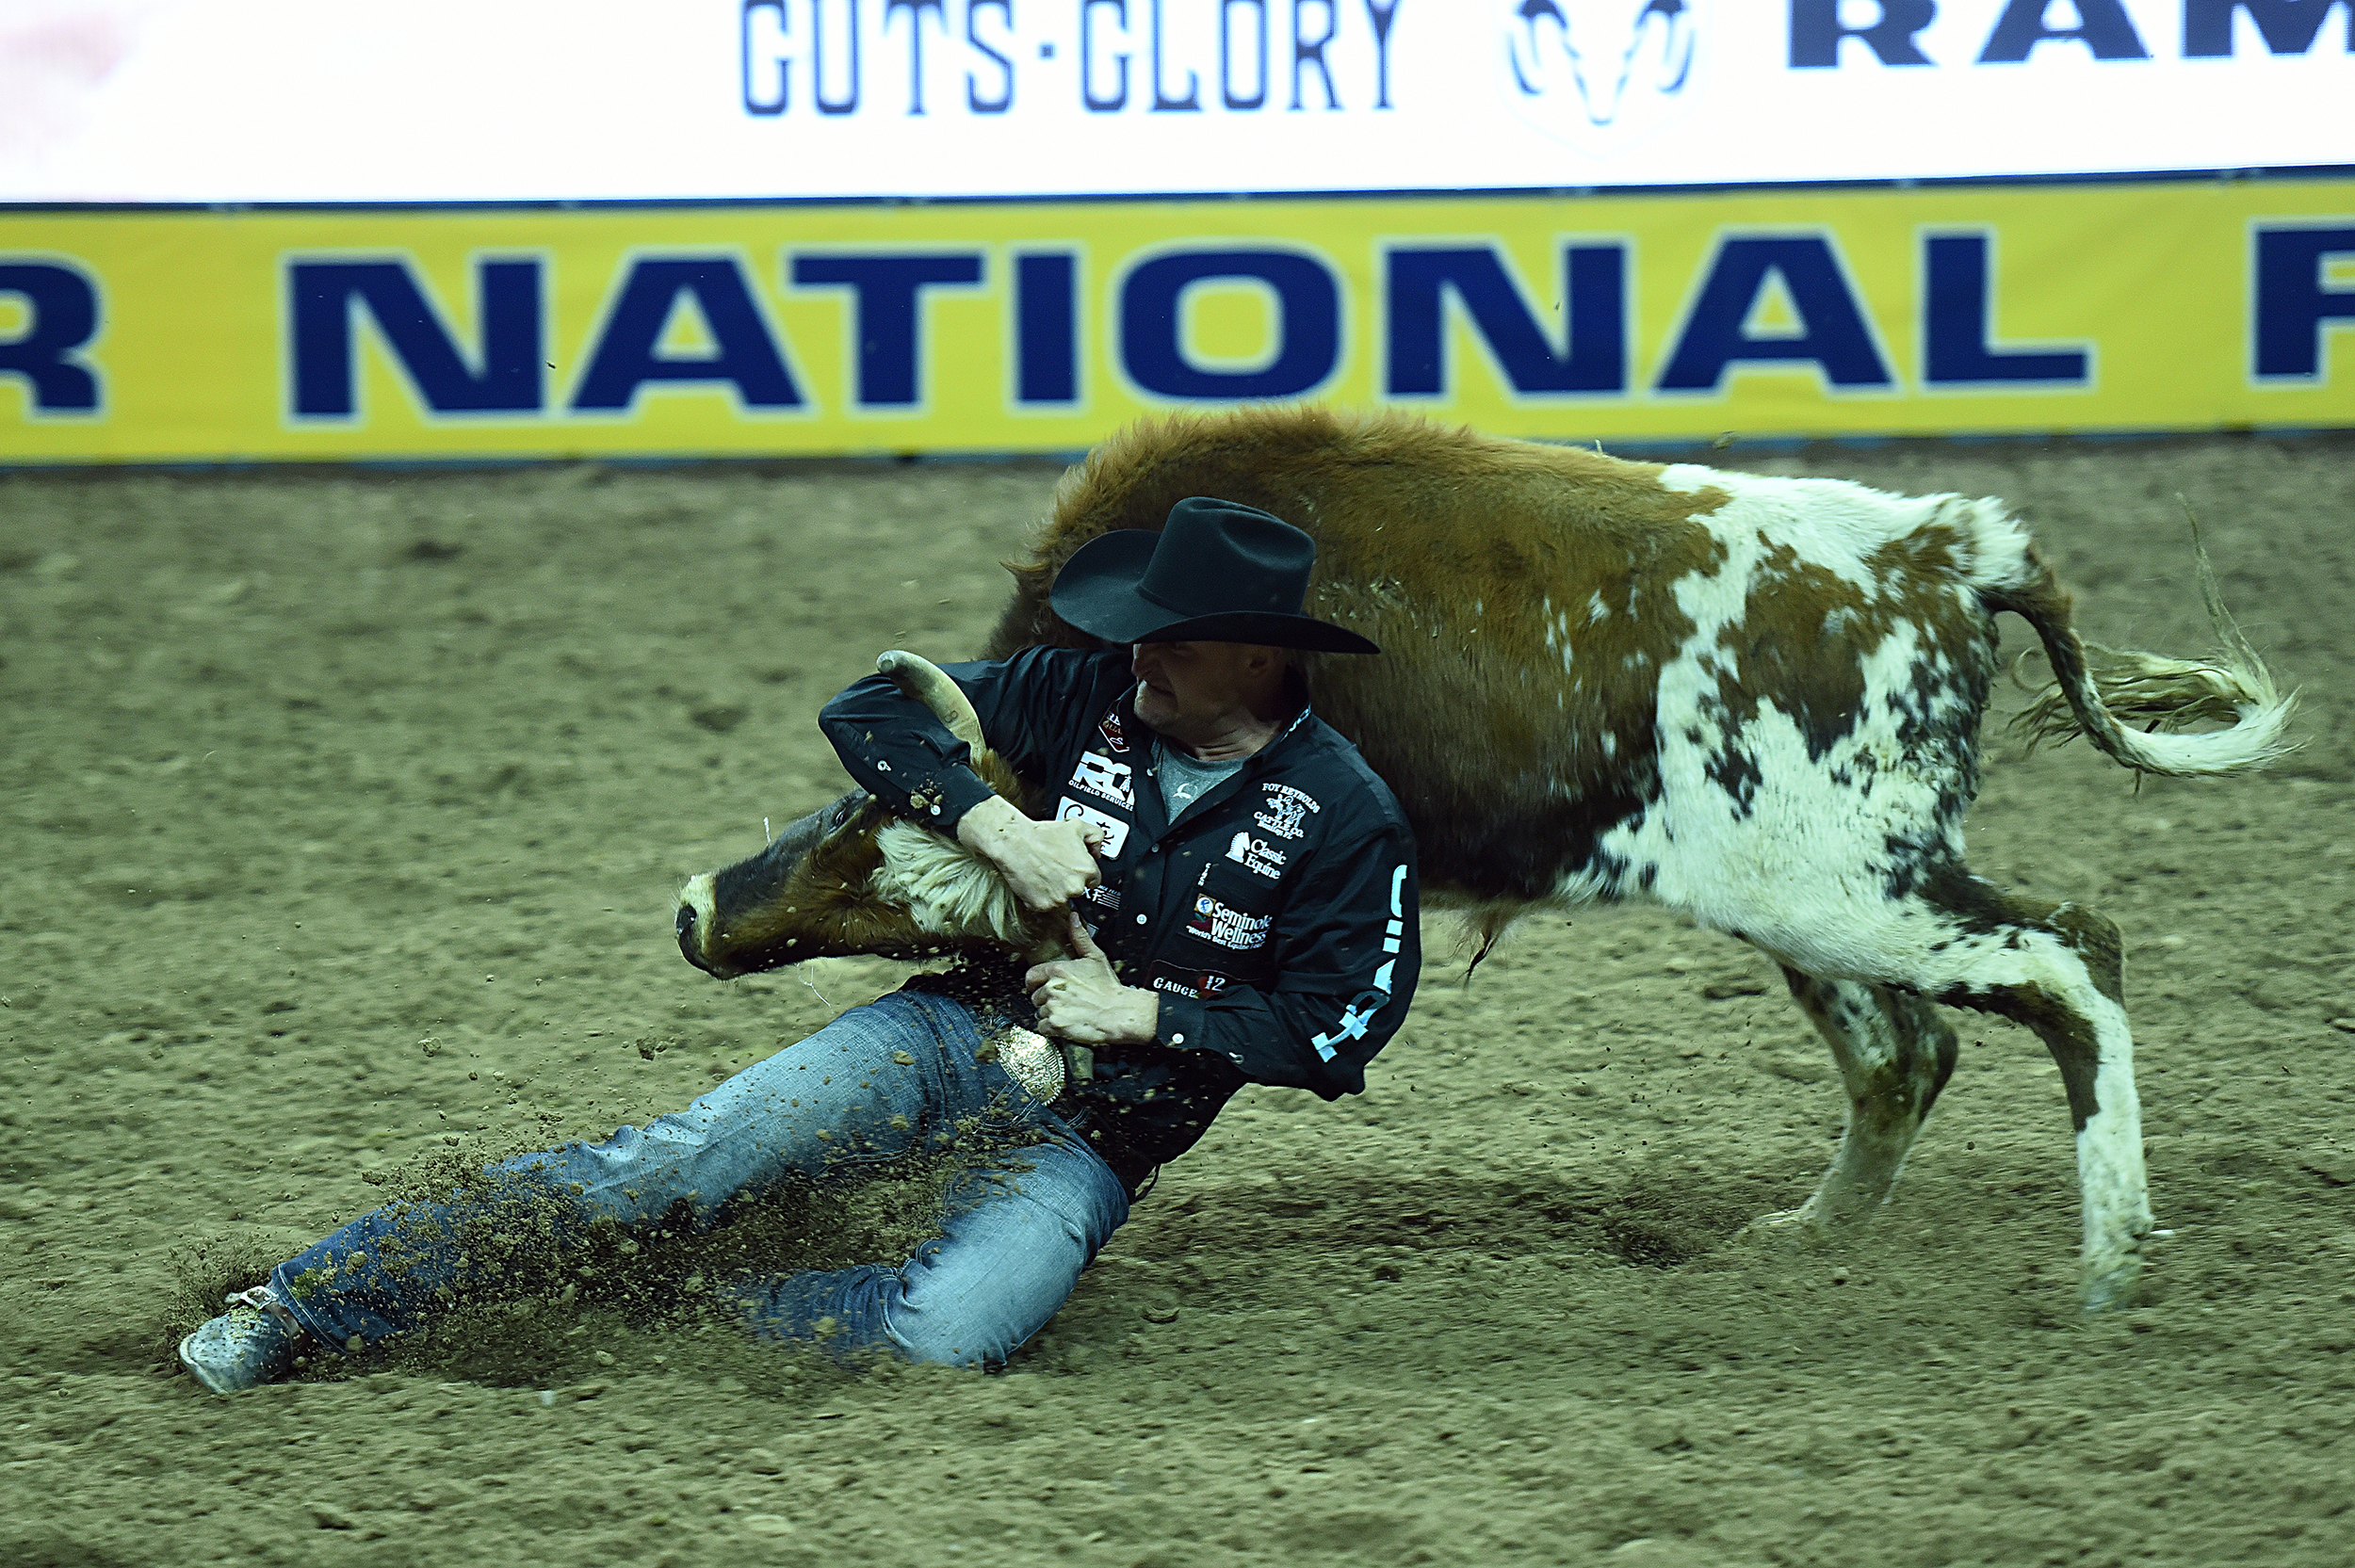 Kyle Irwin wrestled his steer to the ground in 4.0 seconds Thursday night to finish in a tie for third place in the opening round of the National Finals Rodeo. (PHOTO BY ROBBY FREEMAN)